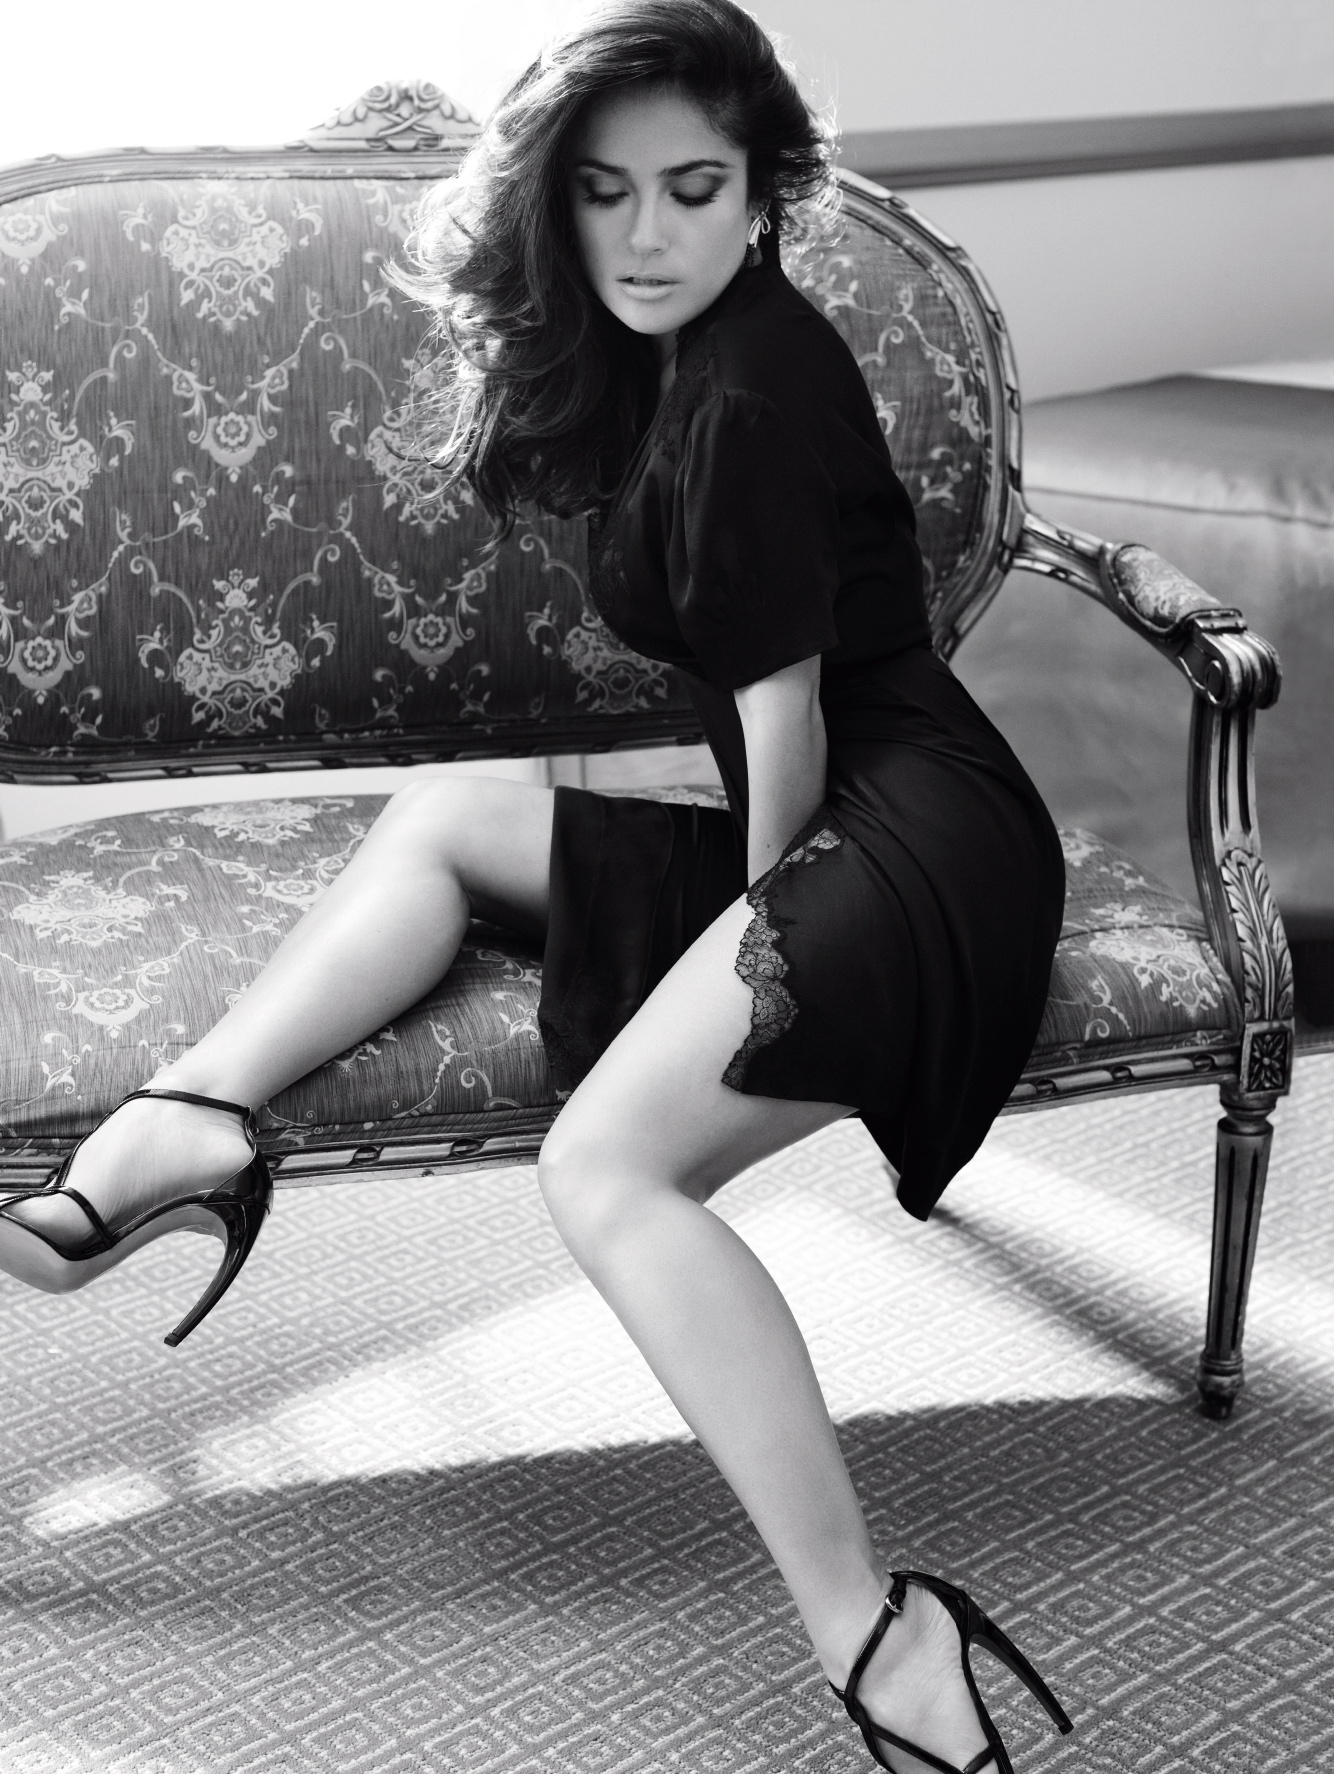 Salma Hayek hot Shots for Vogue 03 GotCeleb